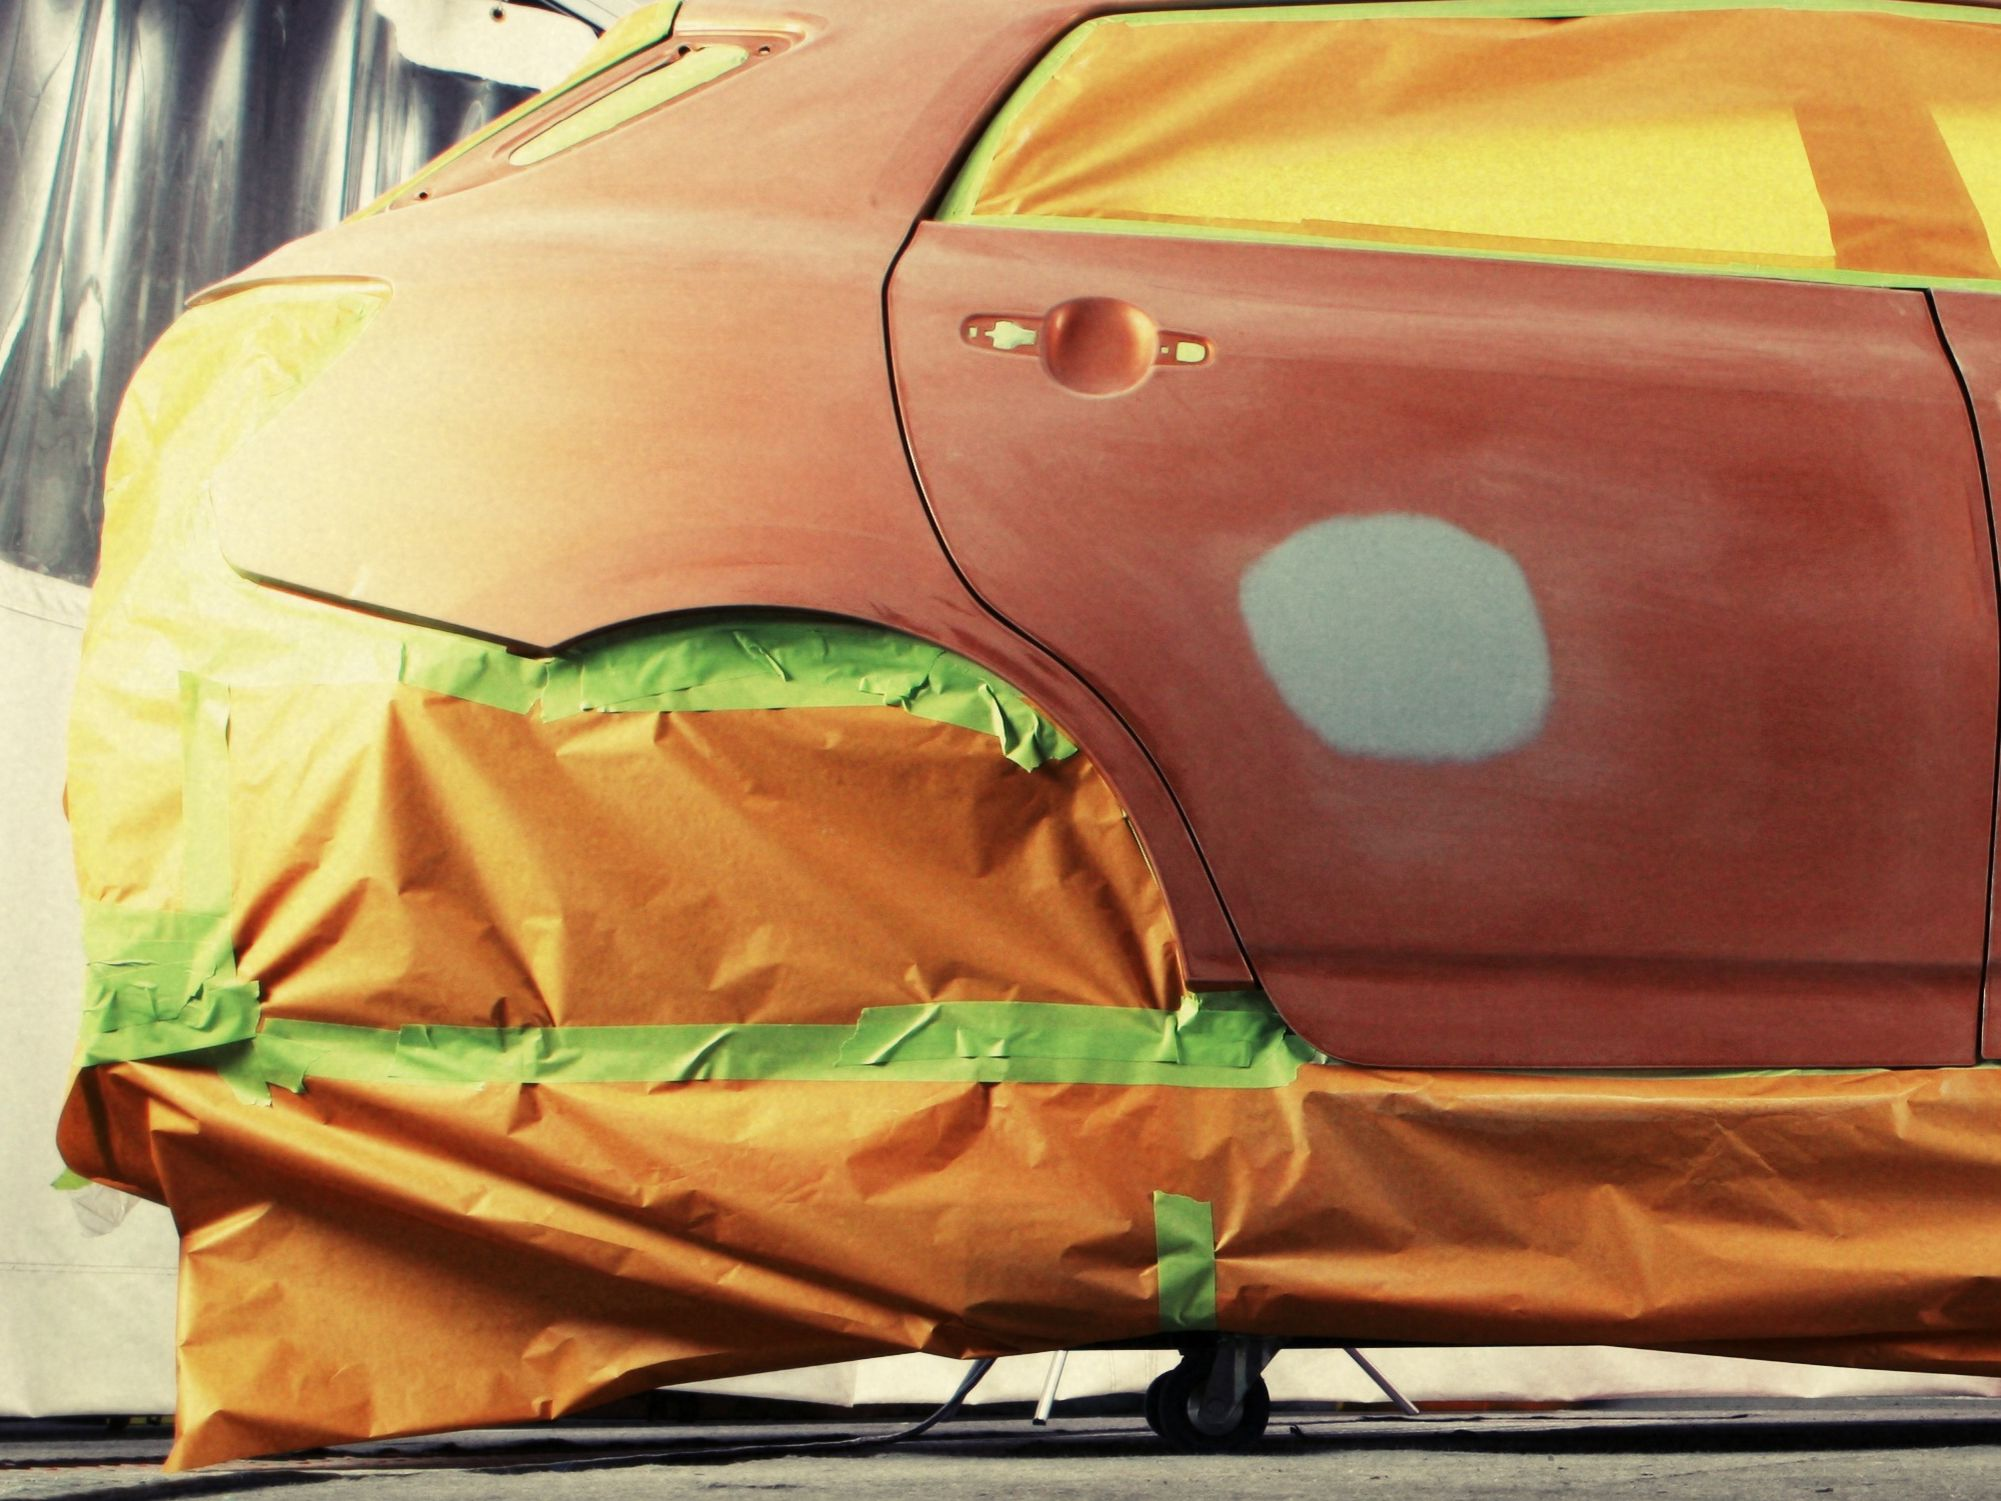 Cost To Paint A Car >> The Cost Of A Professional Car Paint Job Vs Diy